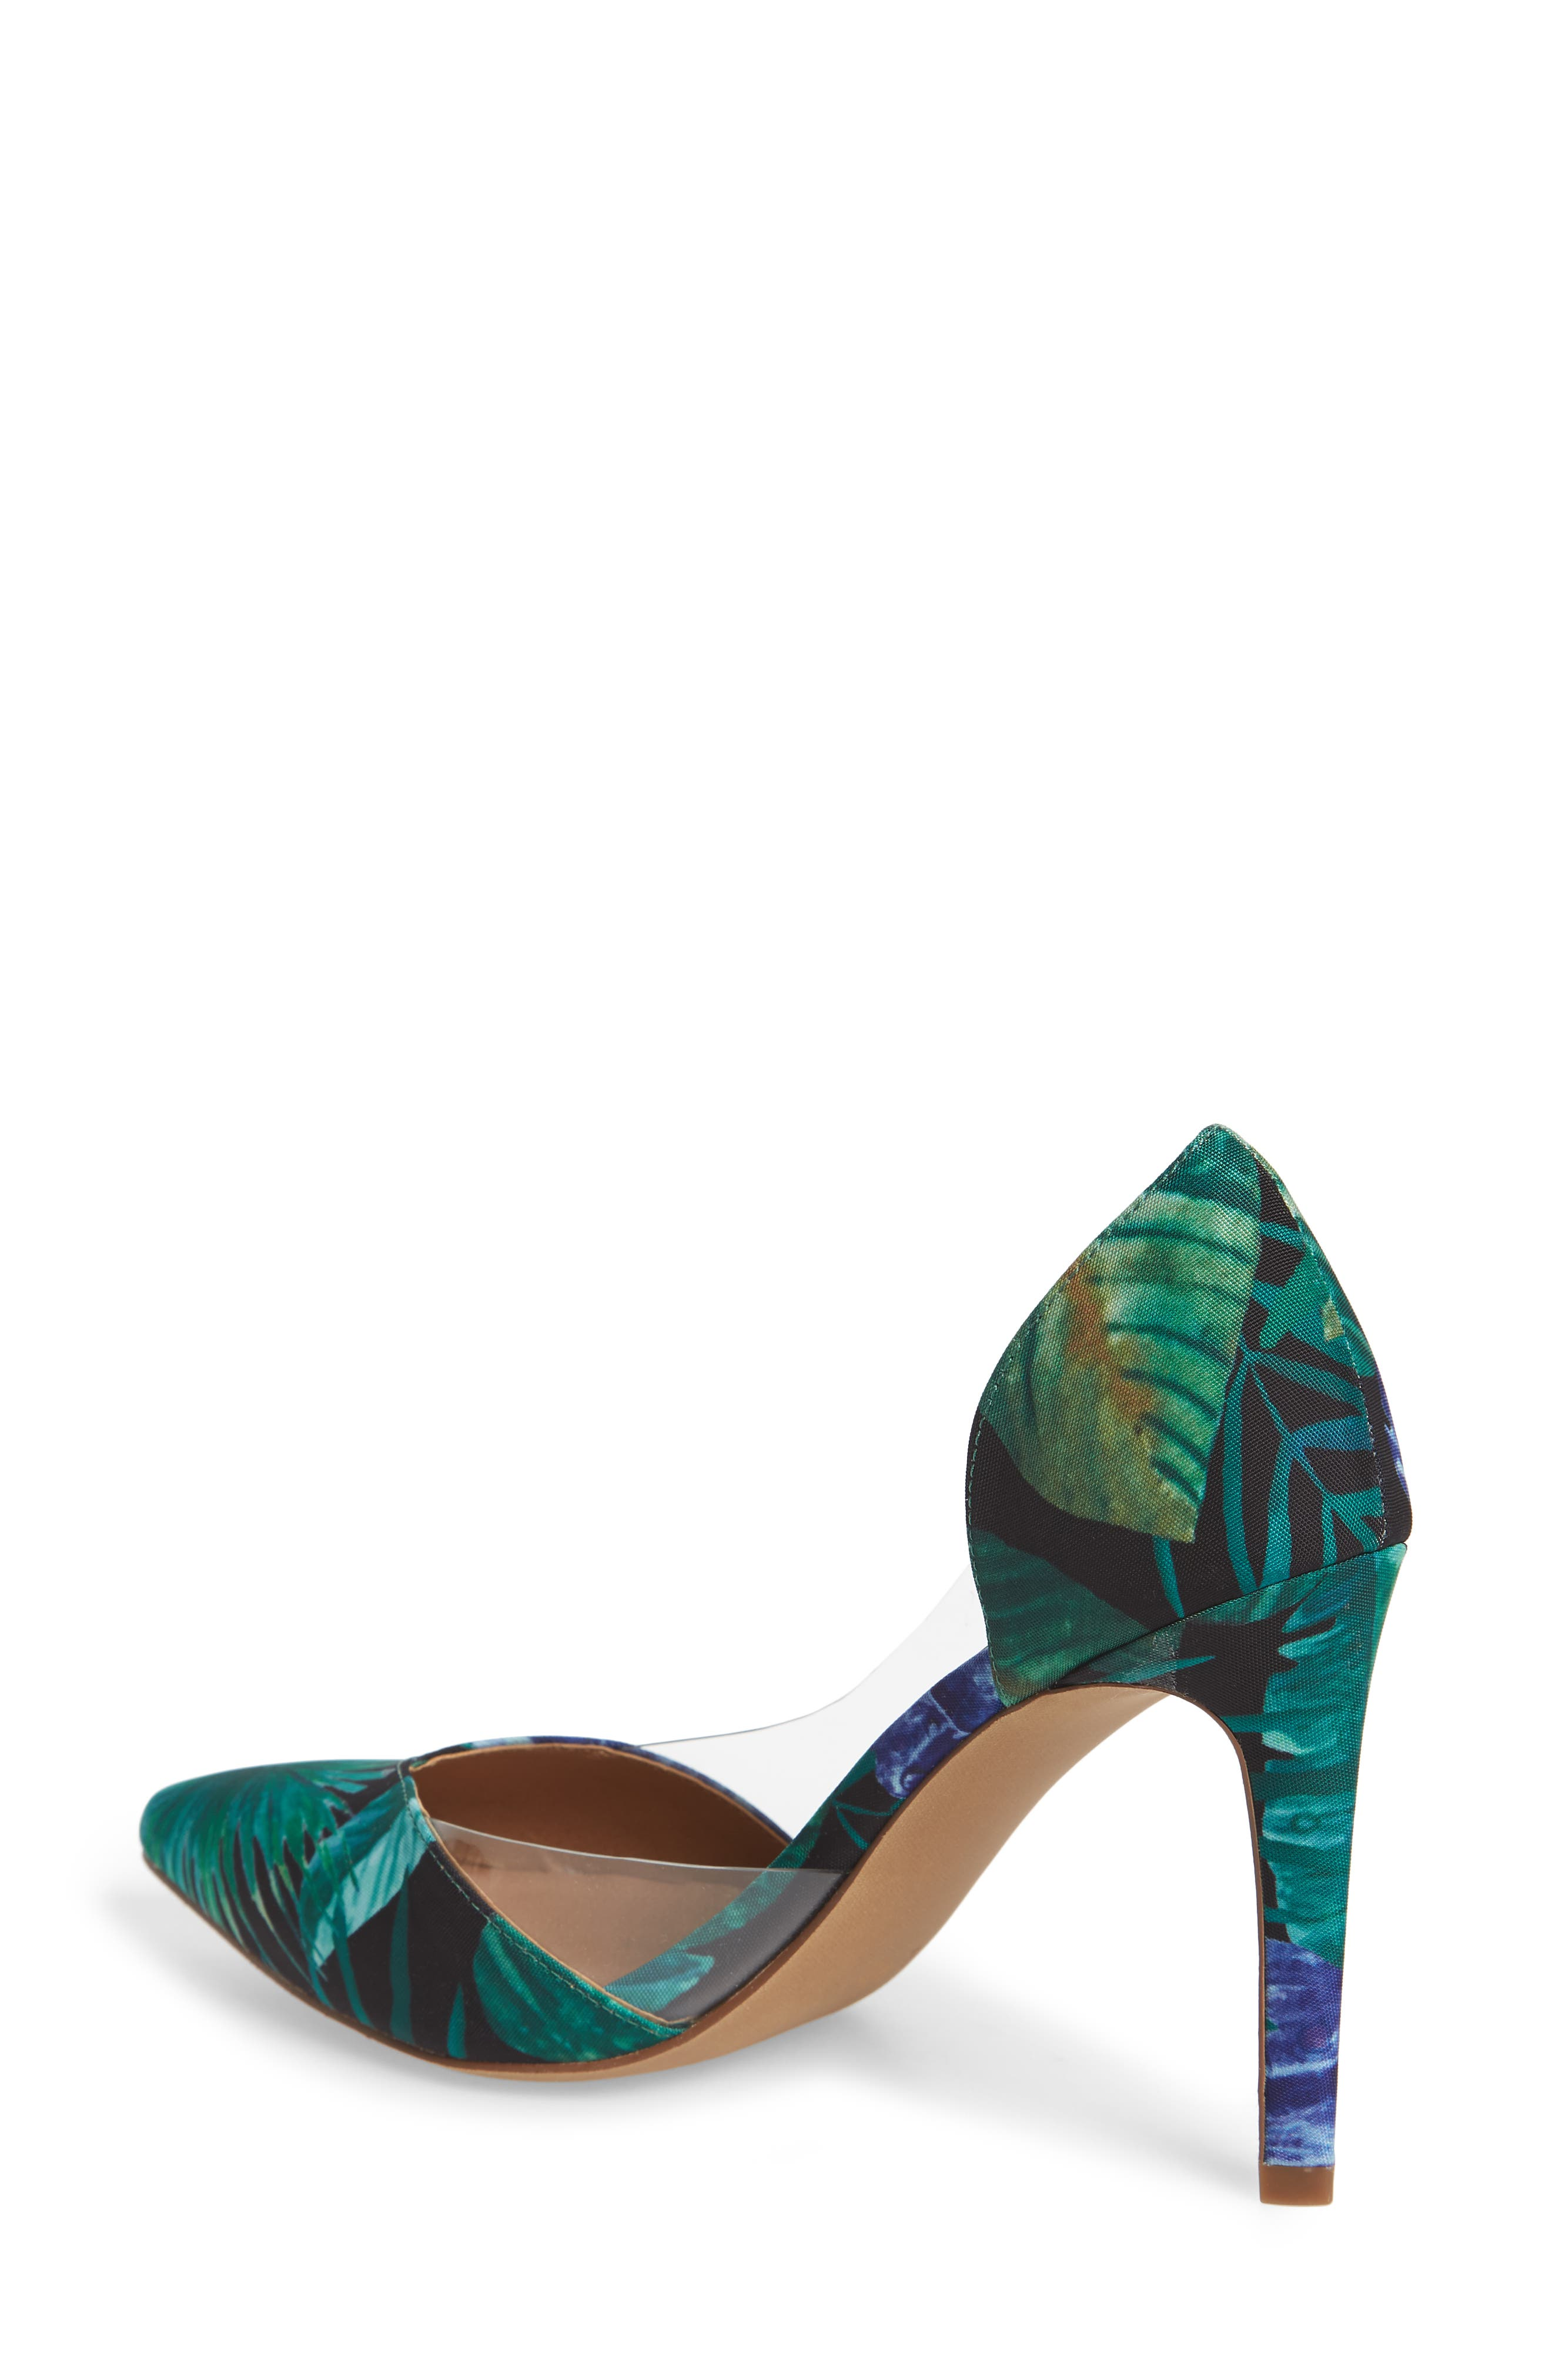 Parker Clear d'Orsay Pump,                             Alternate thumbnail 2, color,                             Green Multi Fabric Print